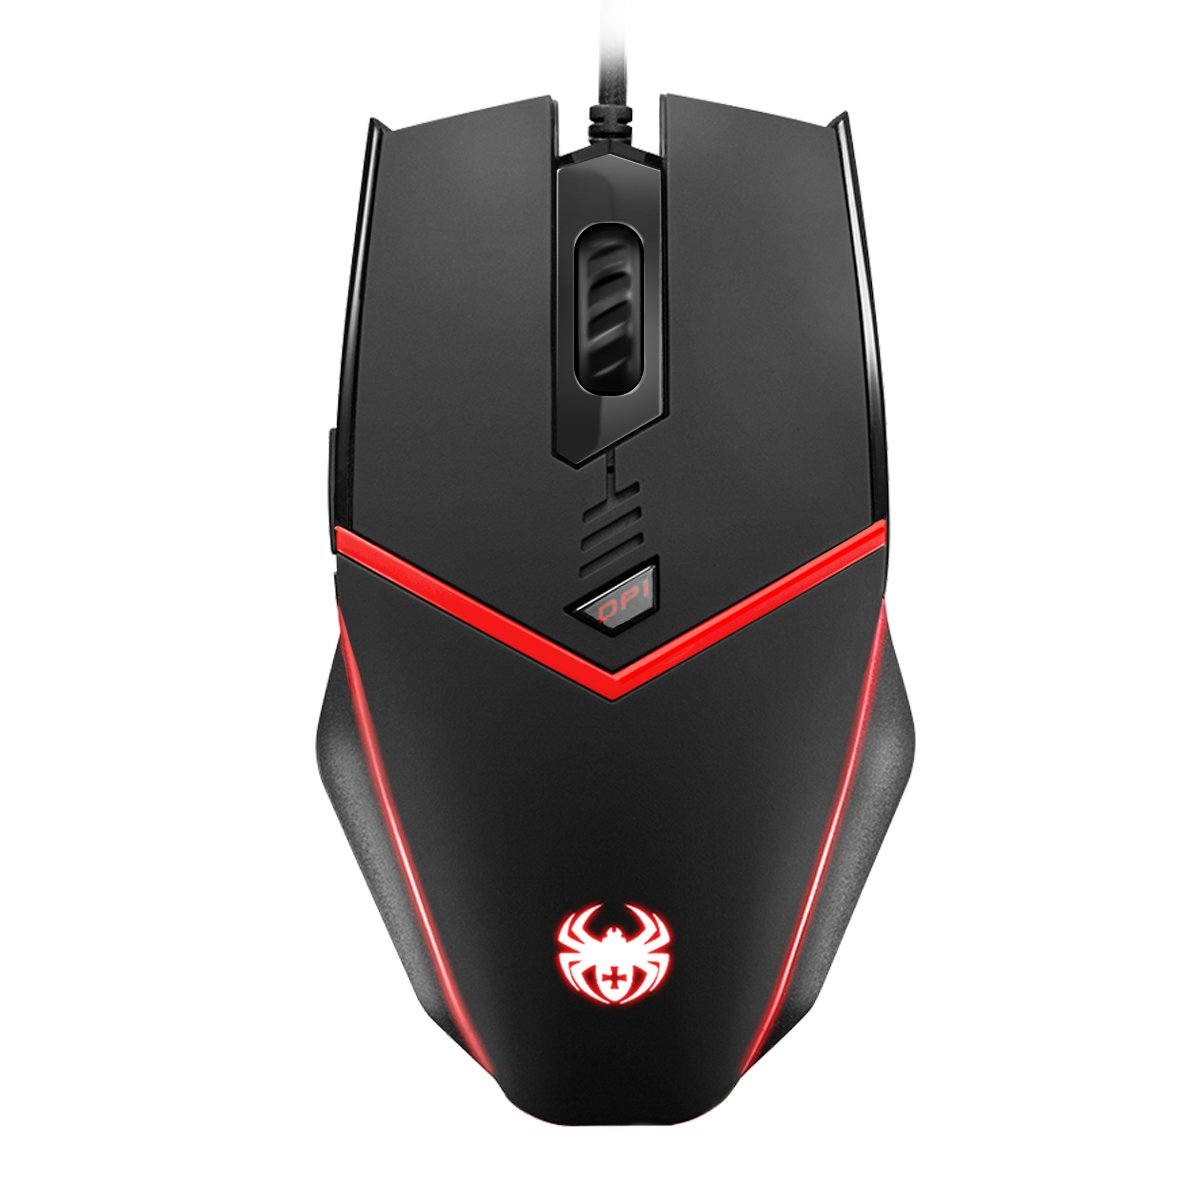 8 Adjustable Weights Adjustable DPI 500-3200 6 Programmable Button Ergonomic USB Wired Optical Mouse Mice Programable Driver Criacr Gaming Mouse